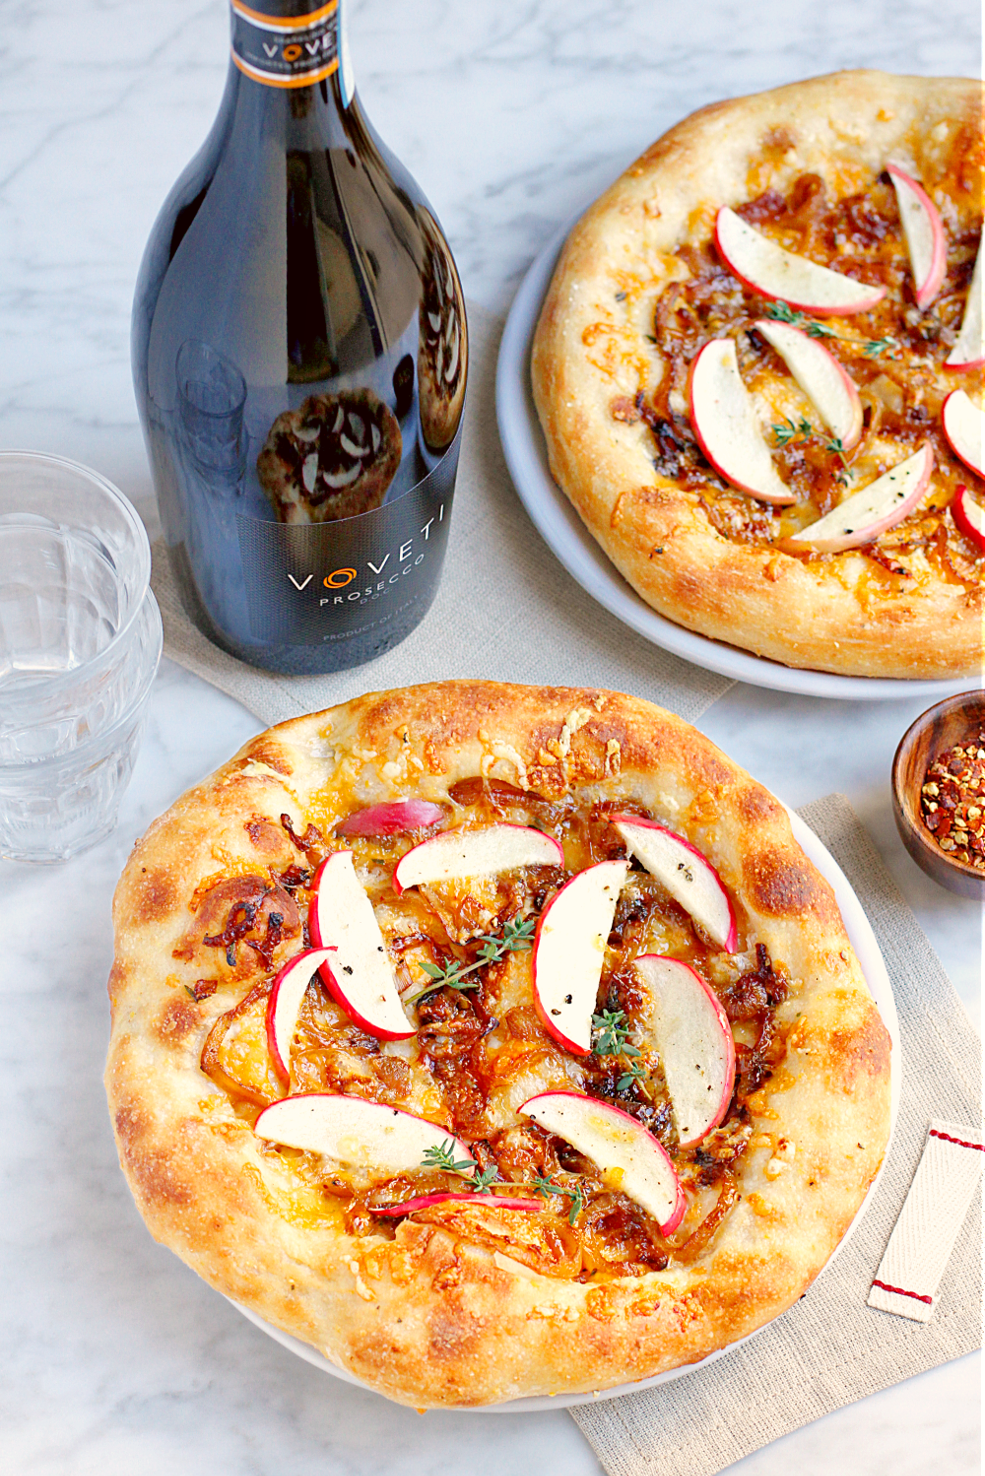 Image of apple and caramelized onion pizza and VOVETI Prosecco.